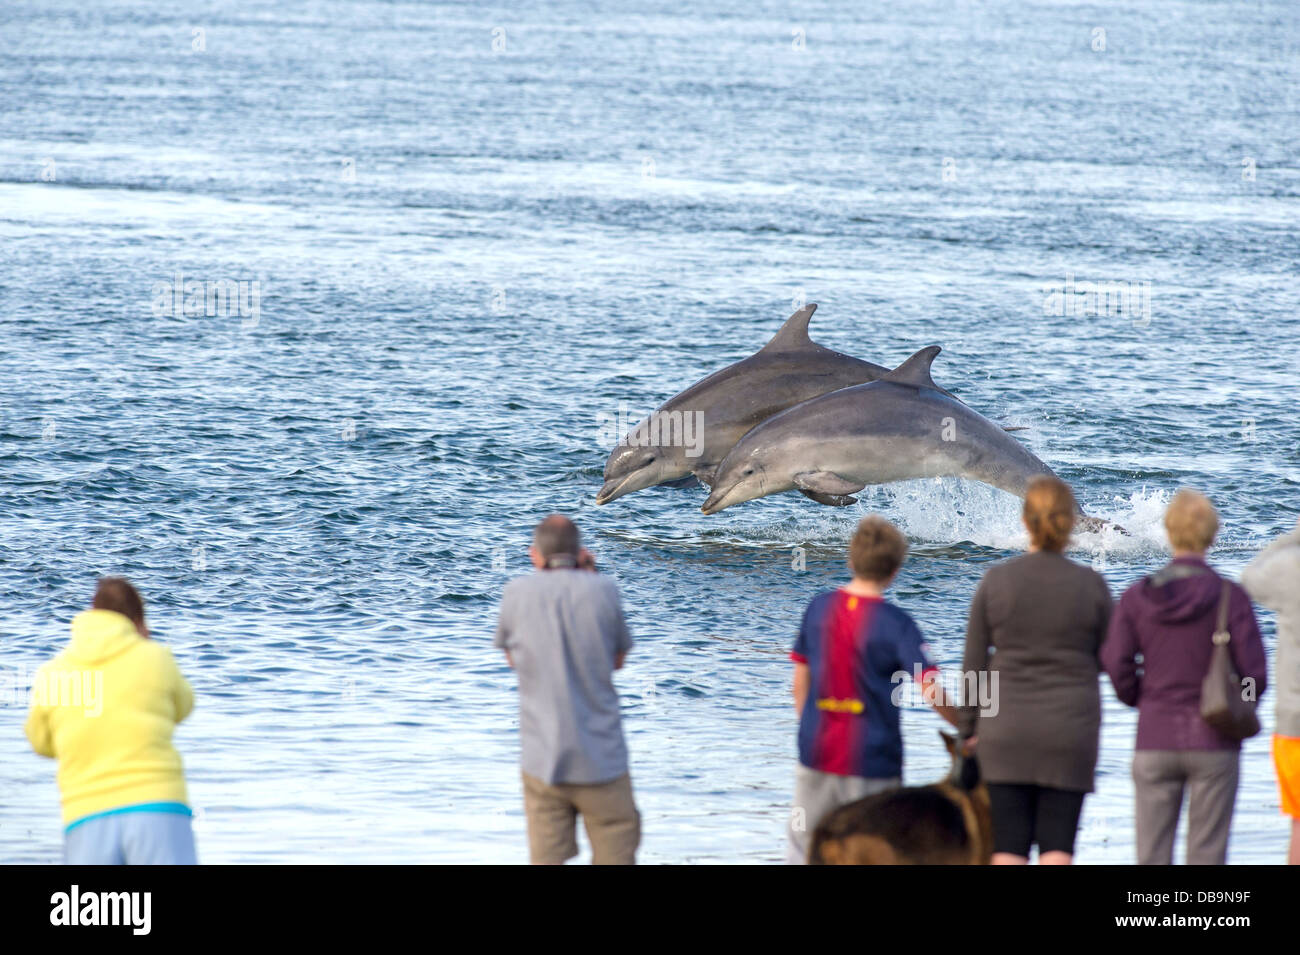 People watching common bottle nosed dolphins breaching, Chanonry Point, Moray firth, Scotland, UK - Stock Image